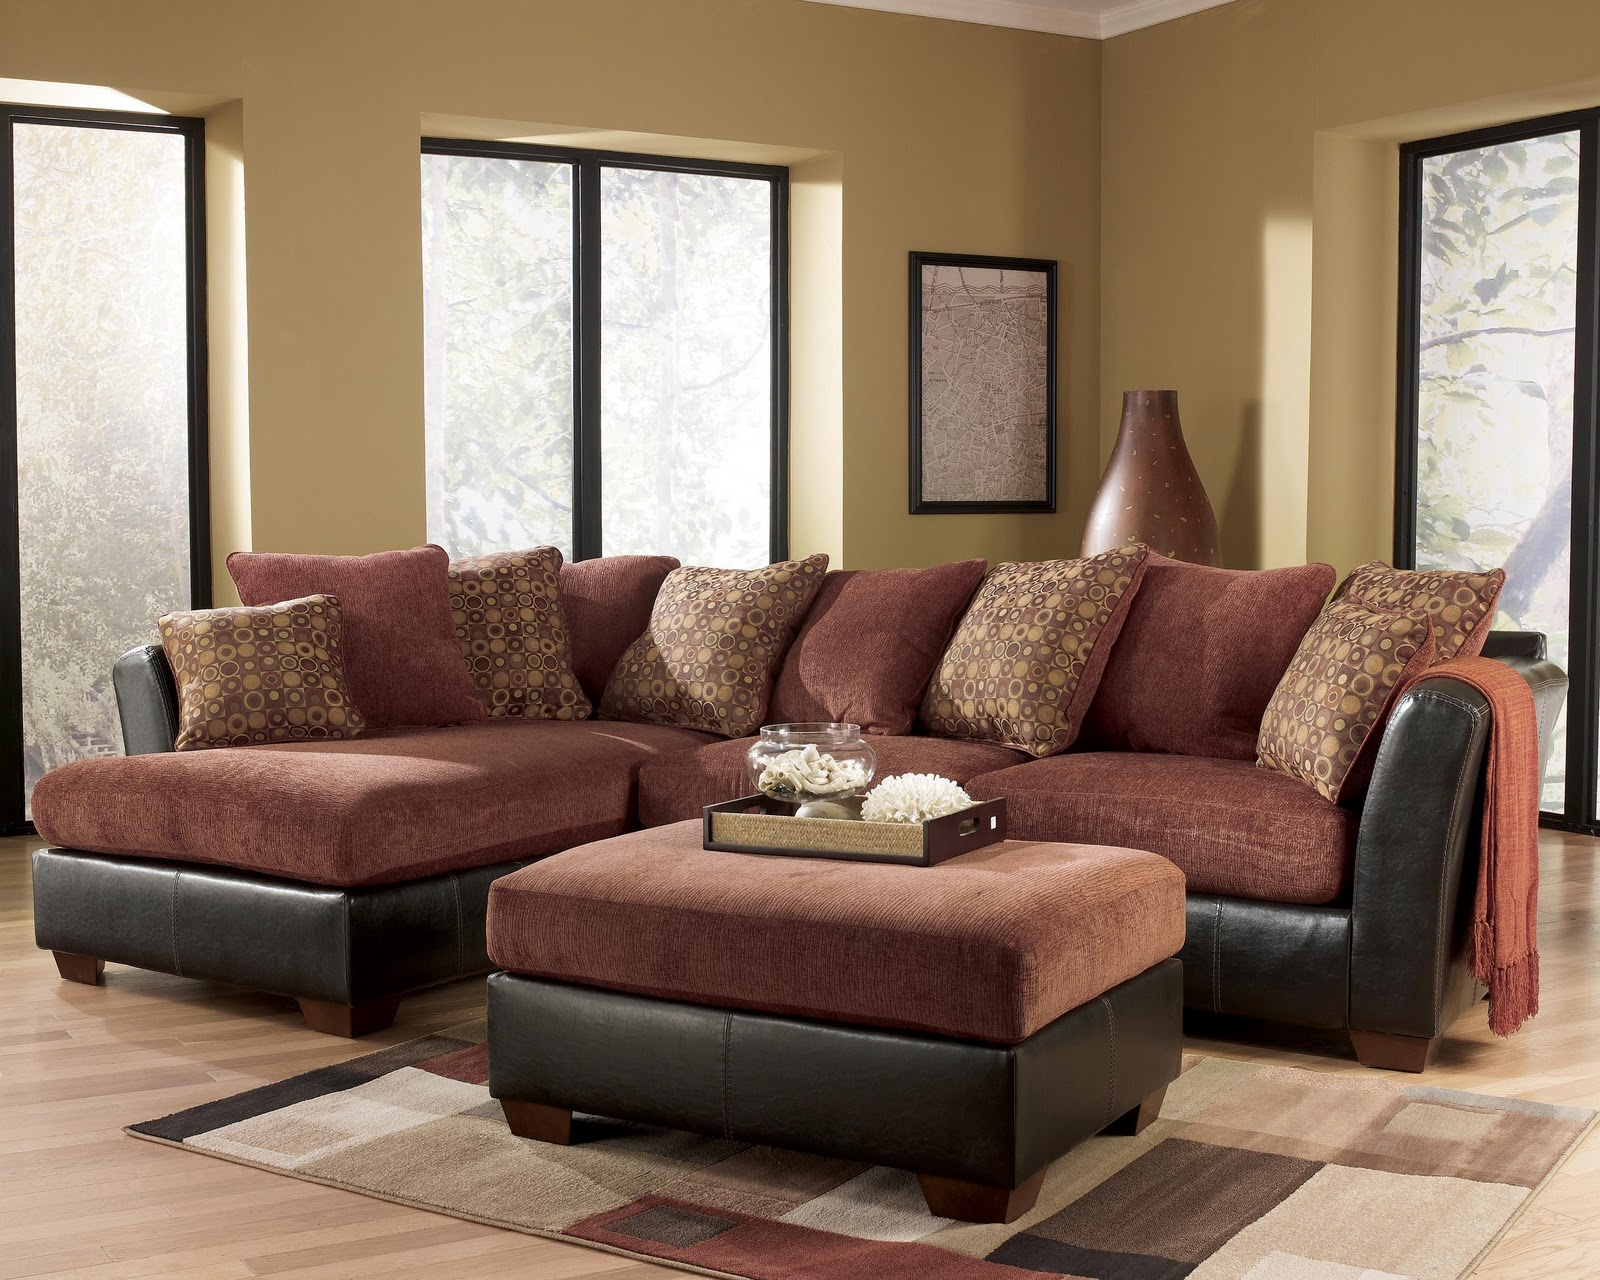 Brilliant Design sofas and sectionals with cushion and laminate flooring for living room Ideas